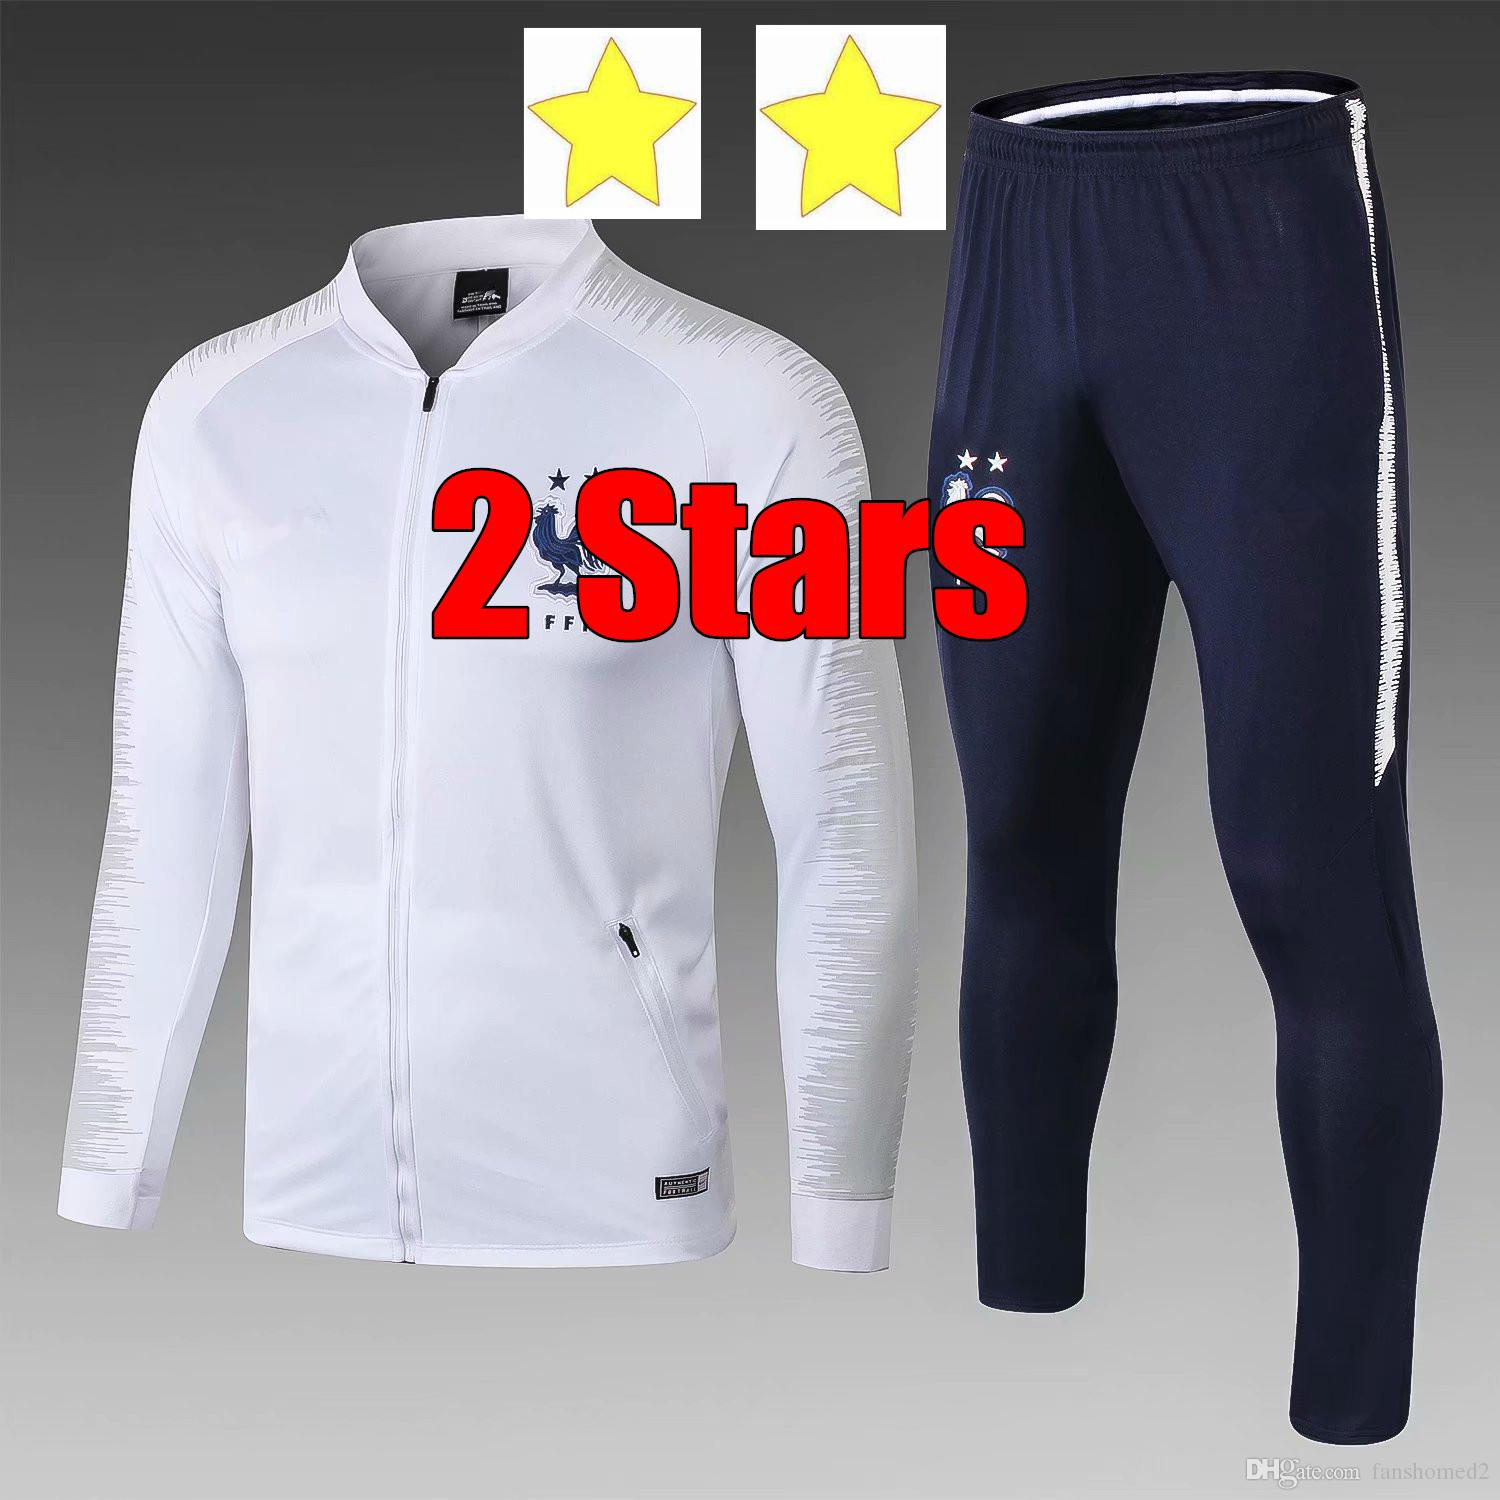 ef40d9c87 2018 World Cup French Jacket Sets 2 Stars Champions Survetement Maillot De  Foot French Away White Football Training Suit Football Tracksuit UK 2019  From ...